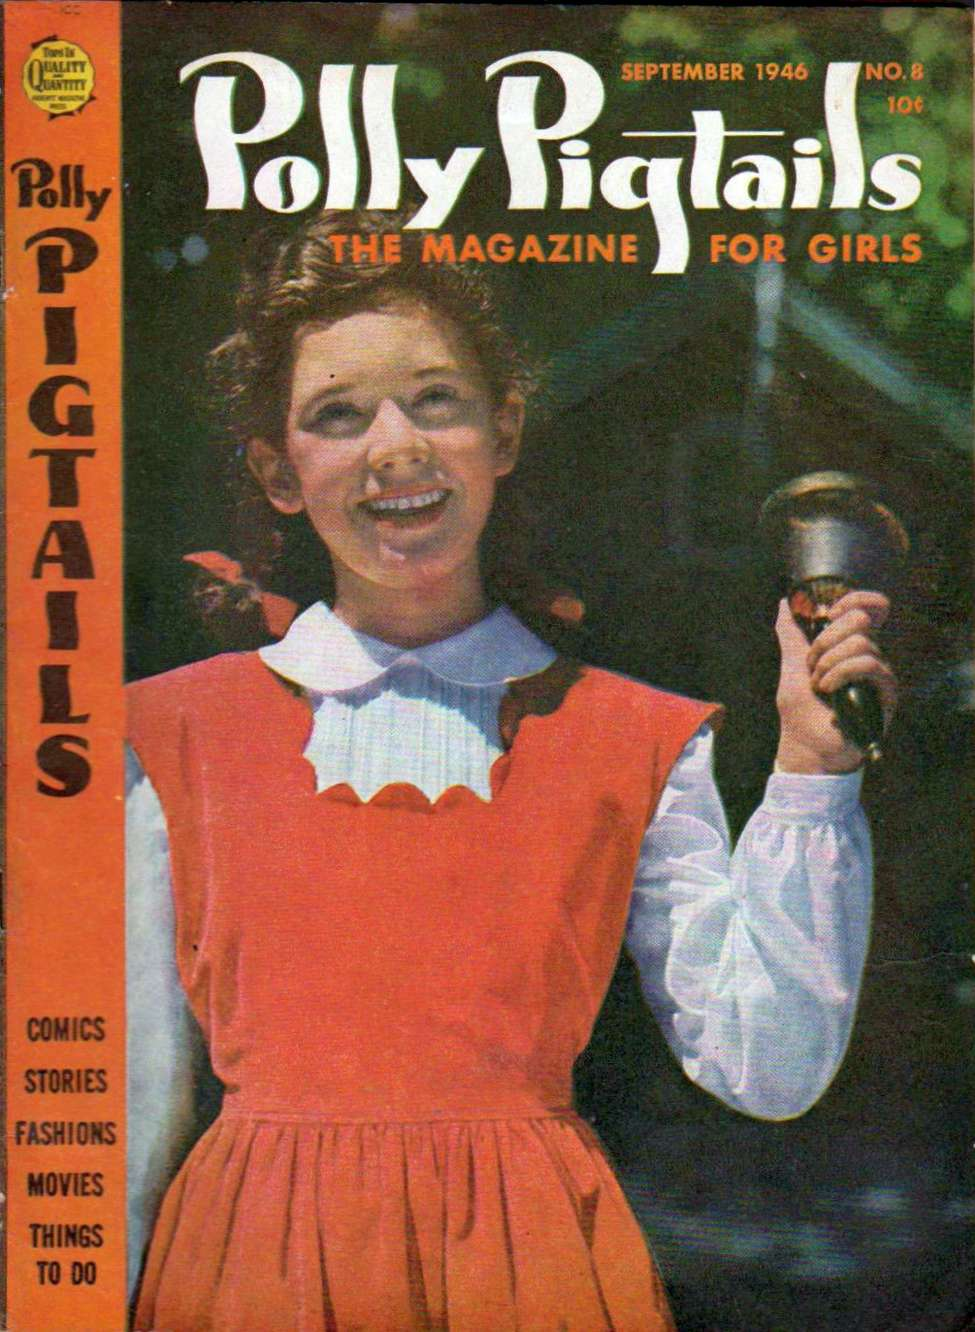 Comic Book Cover For Polly Pigtails #8